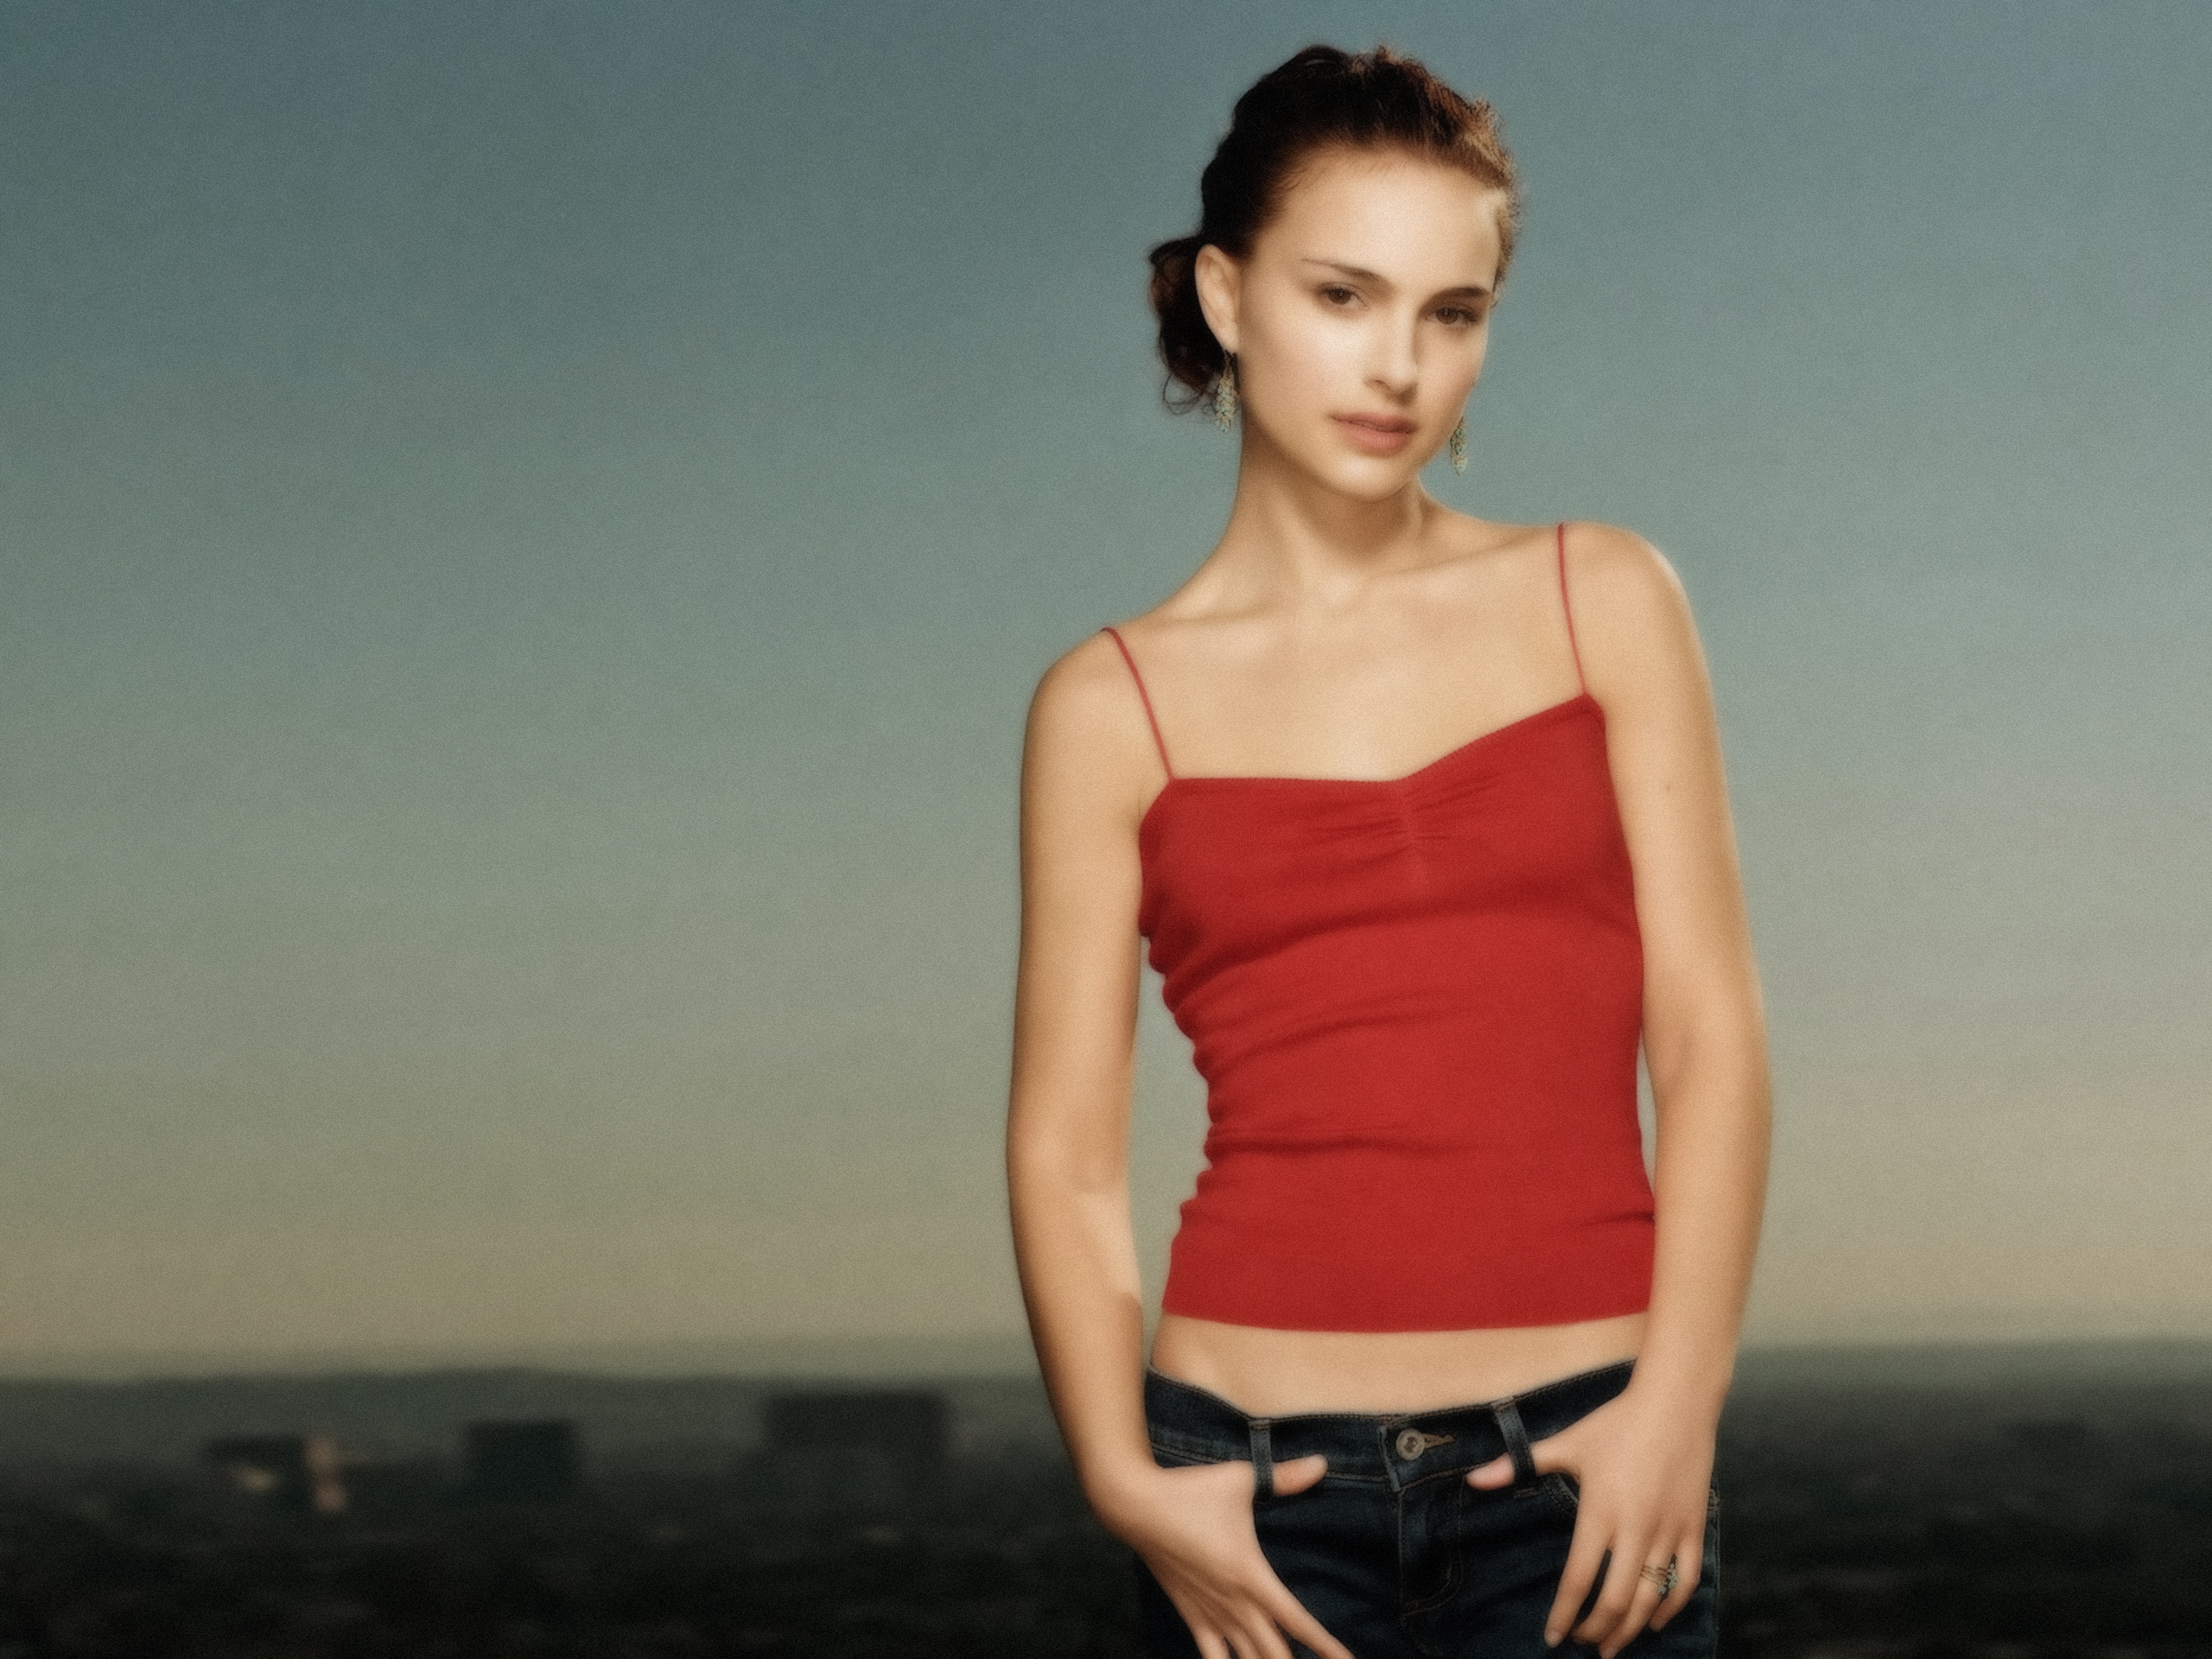 ICloud Natalie Portman nudes (71 photo), Sexy, Cleavage, Boobs, cameltoe 2020